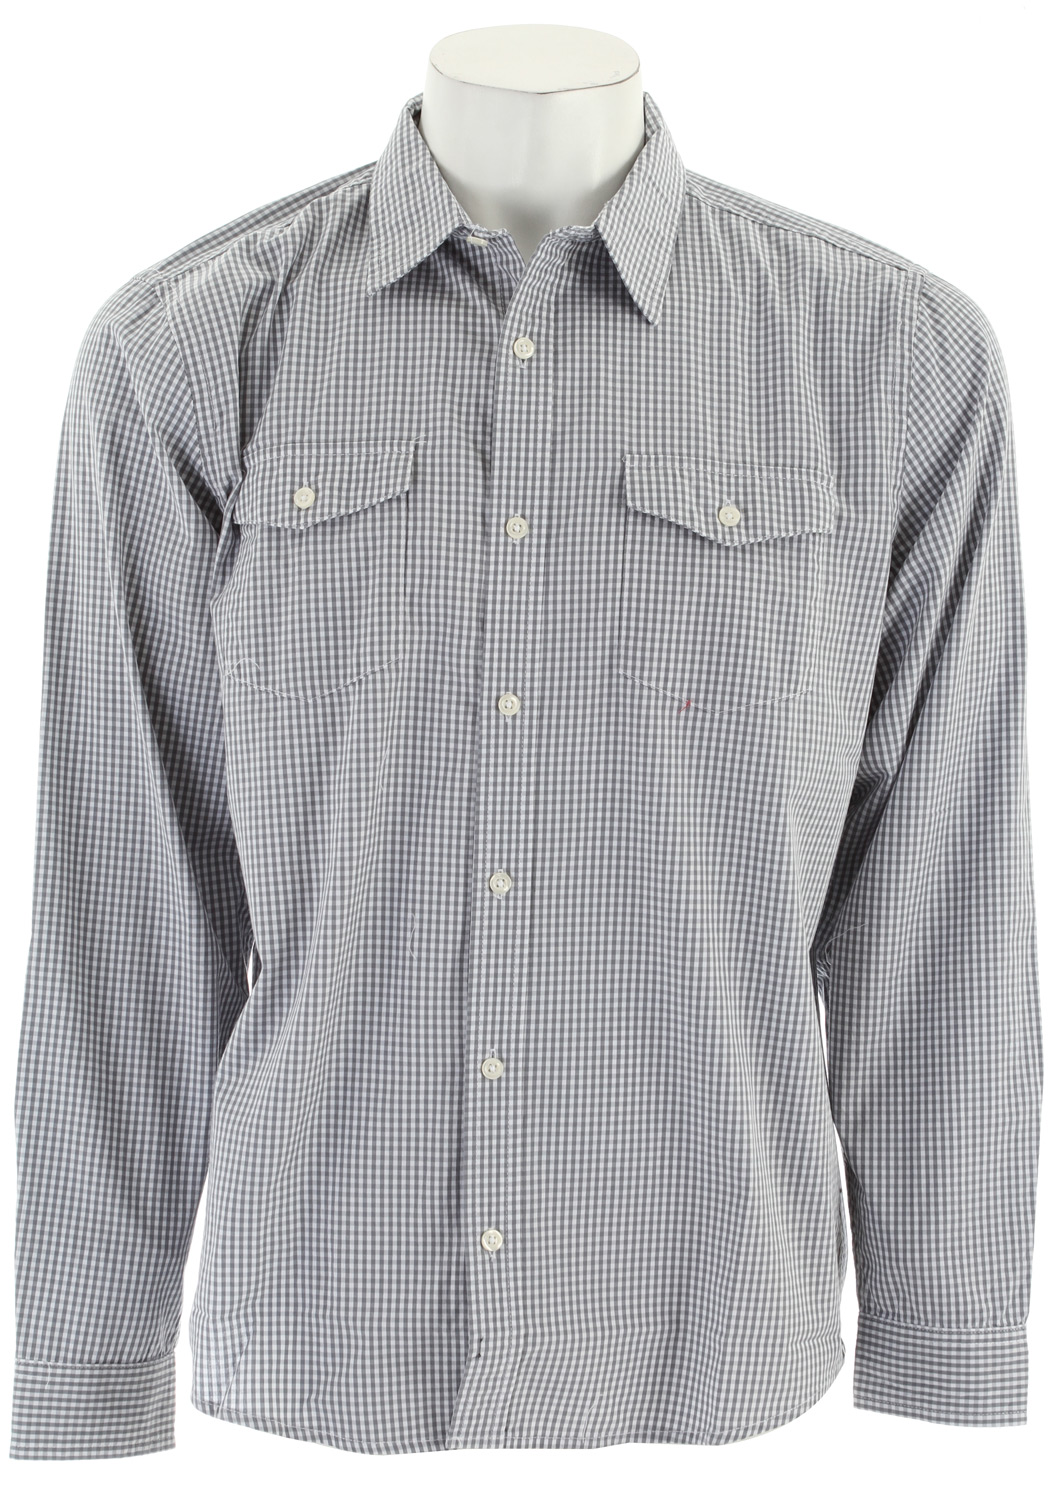 Surf Hurley Solution L/S Shirt Grey - $25.95